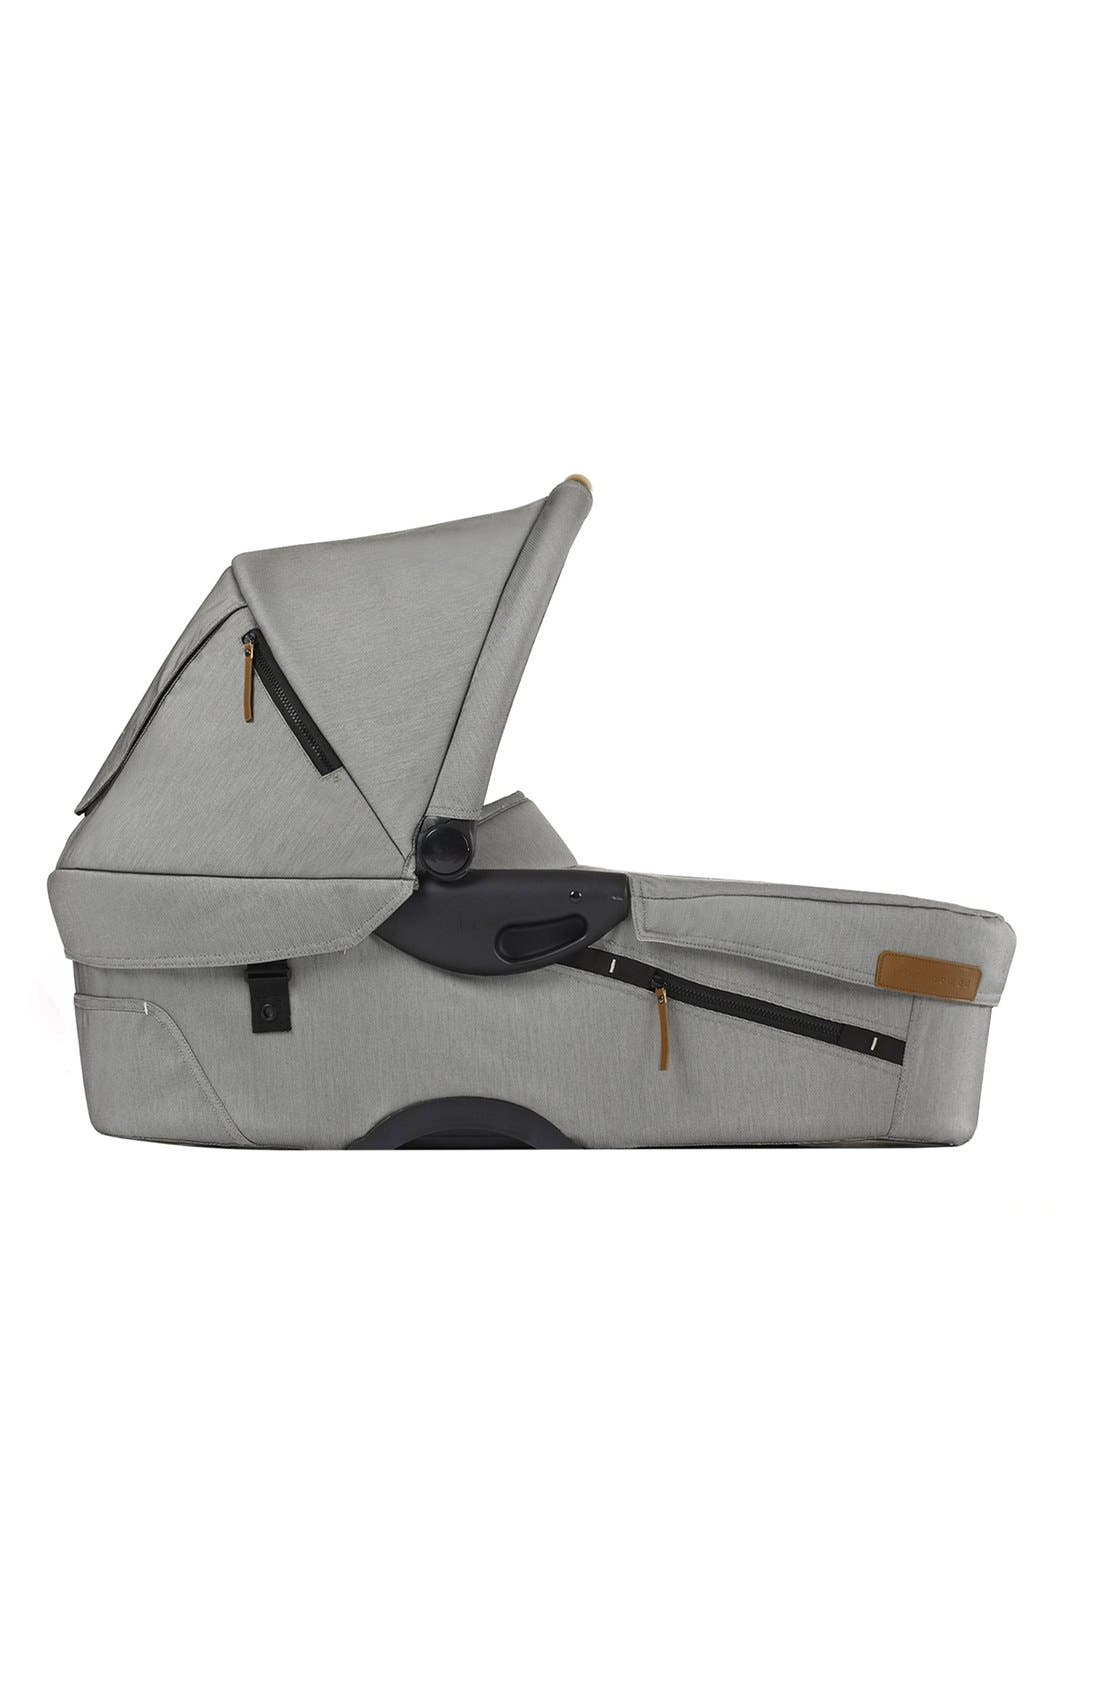 Alternate Image 1 Selected - Mutsy 'Evo - Urban Nomad' Bassinet